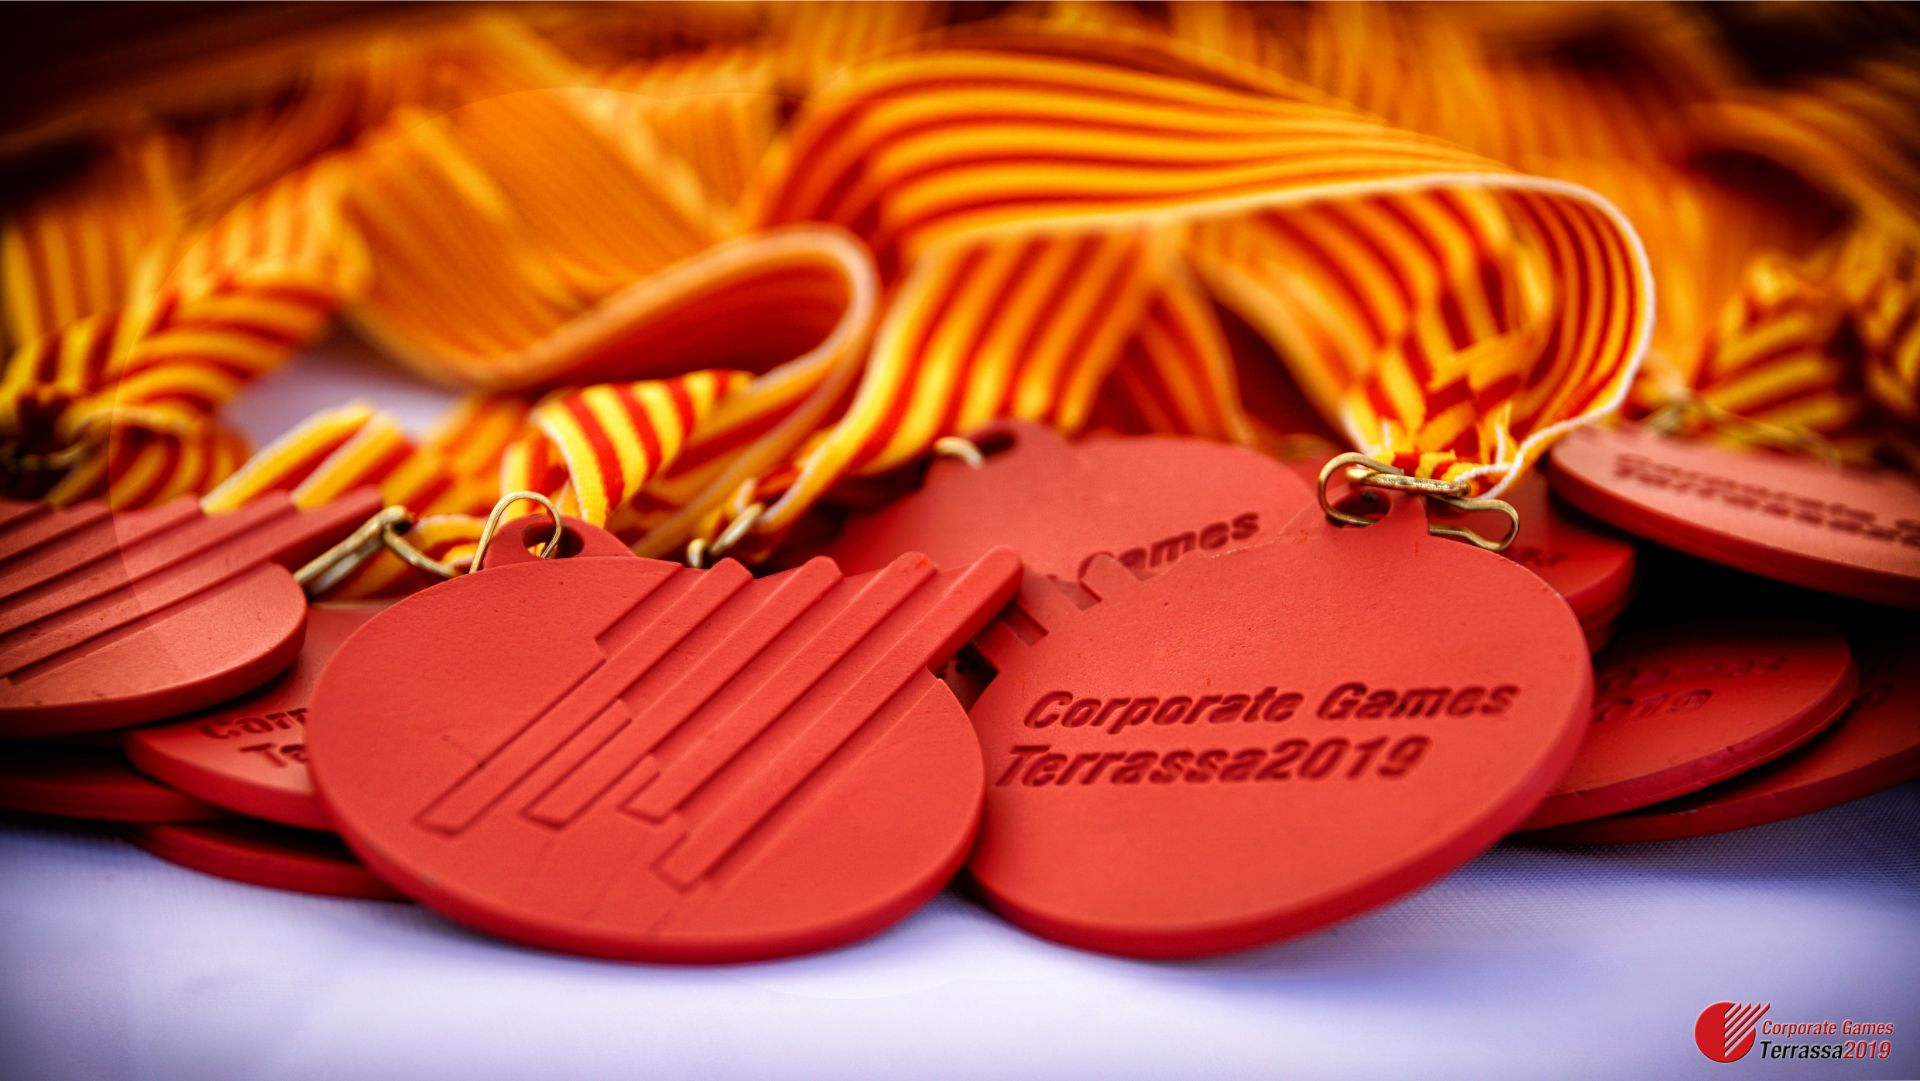 CORPORATE GAMES TERRASSA 2019-MEDALLAS-01676-Logo